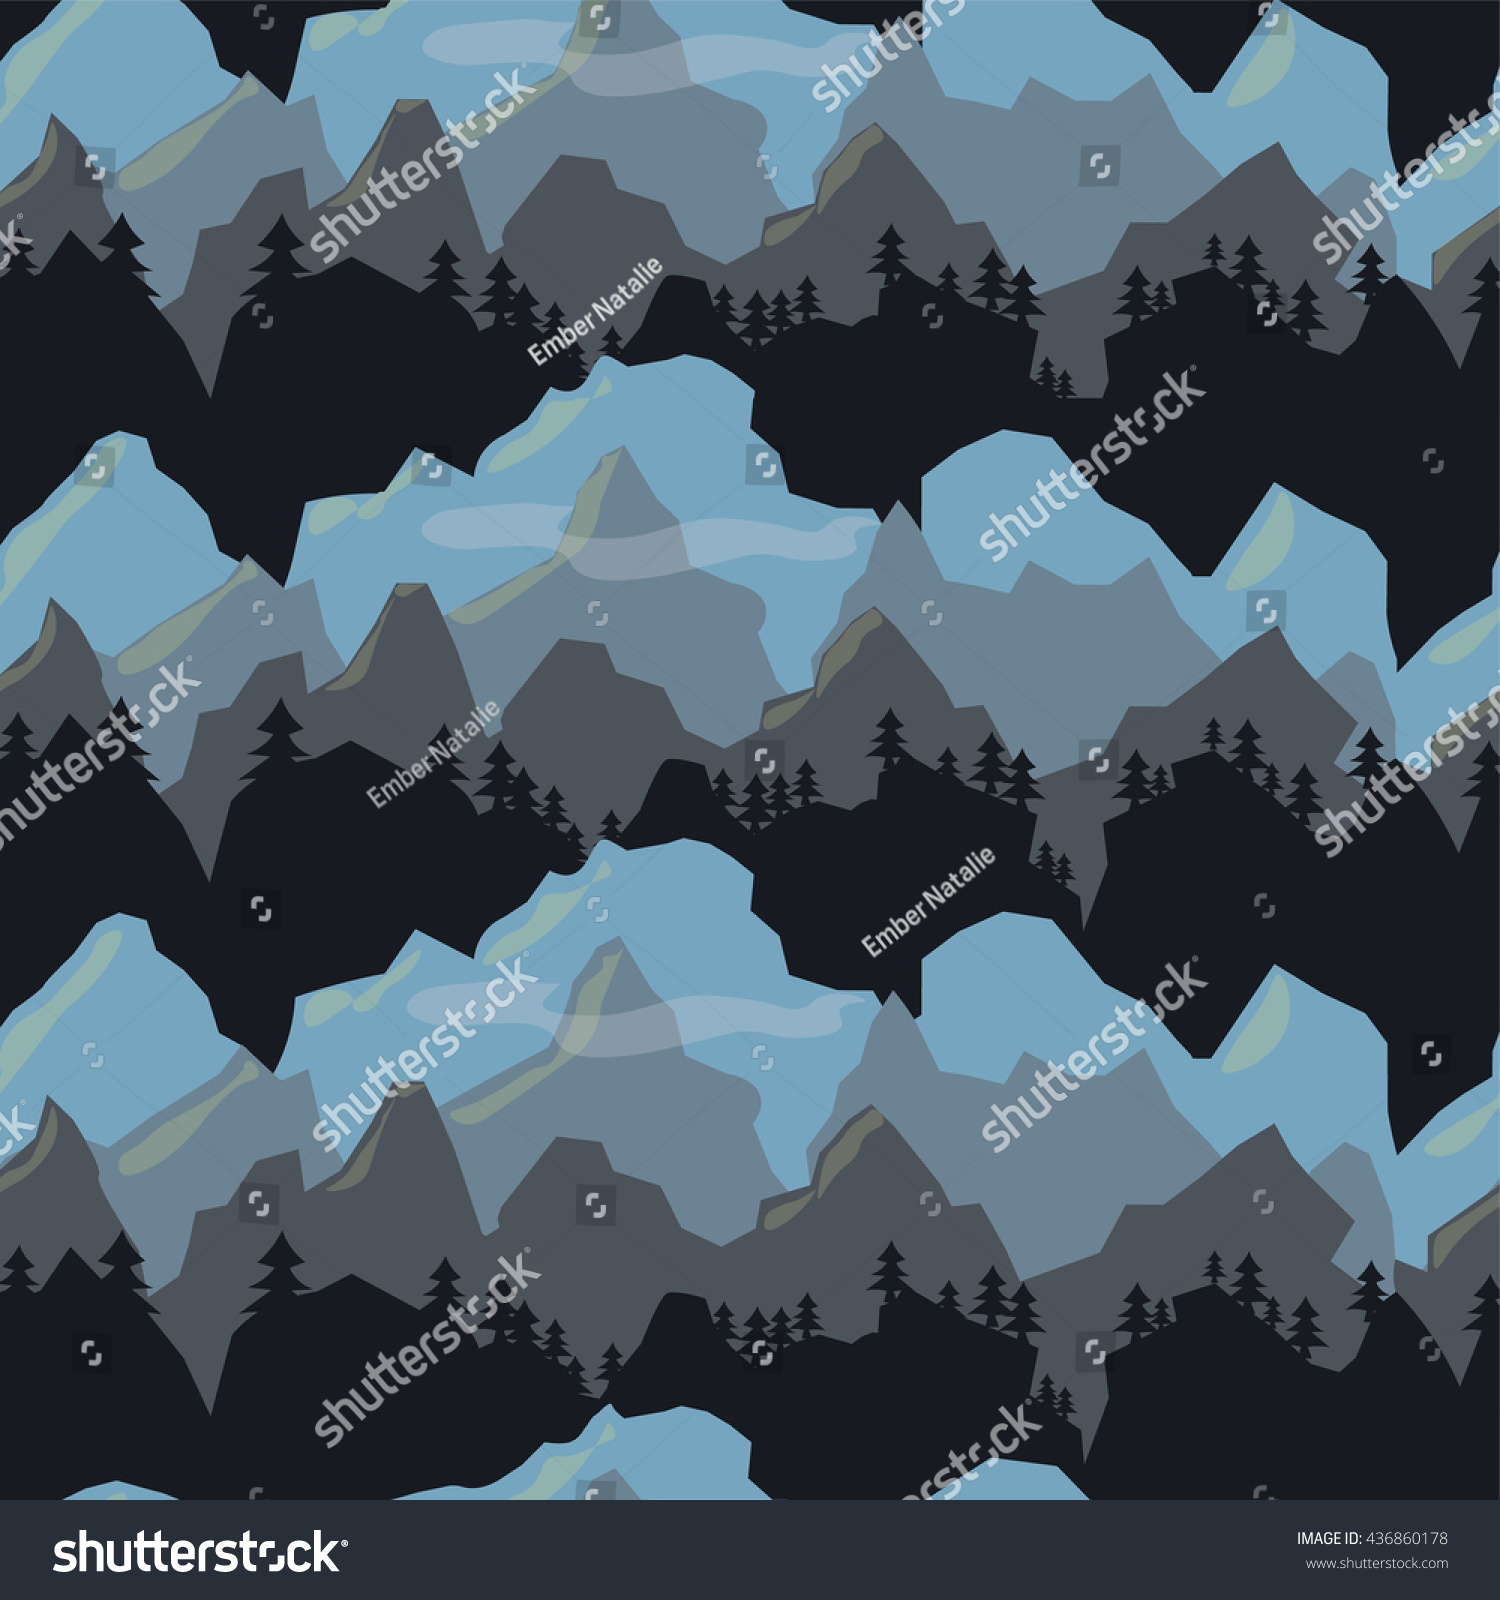 Simple Wallpaper Mountain Pattern - stock-photo-seamless-pattern-of-dark-mountains-in-perspective-great-for-textile-wallpaper-fabric-wrapping-436860178  Trends_25771.jpg